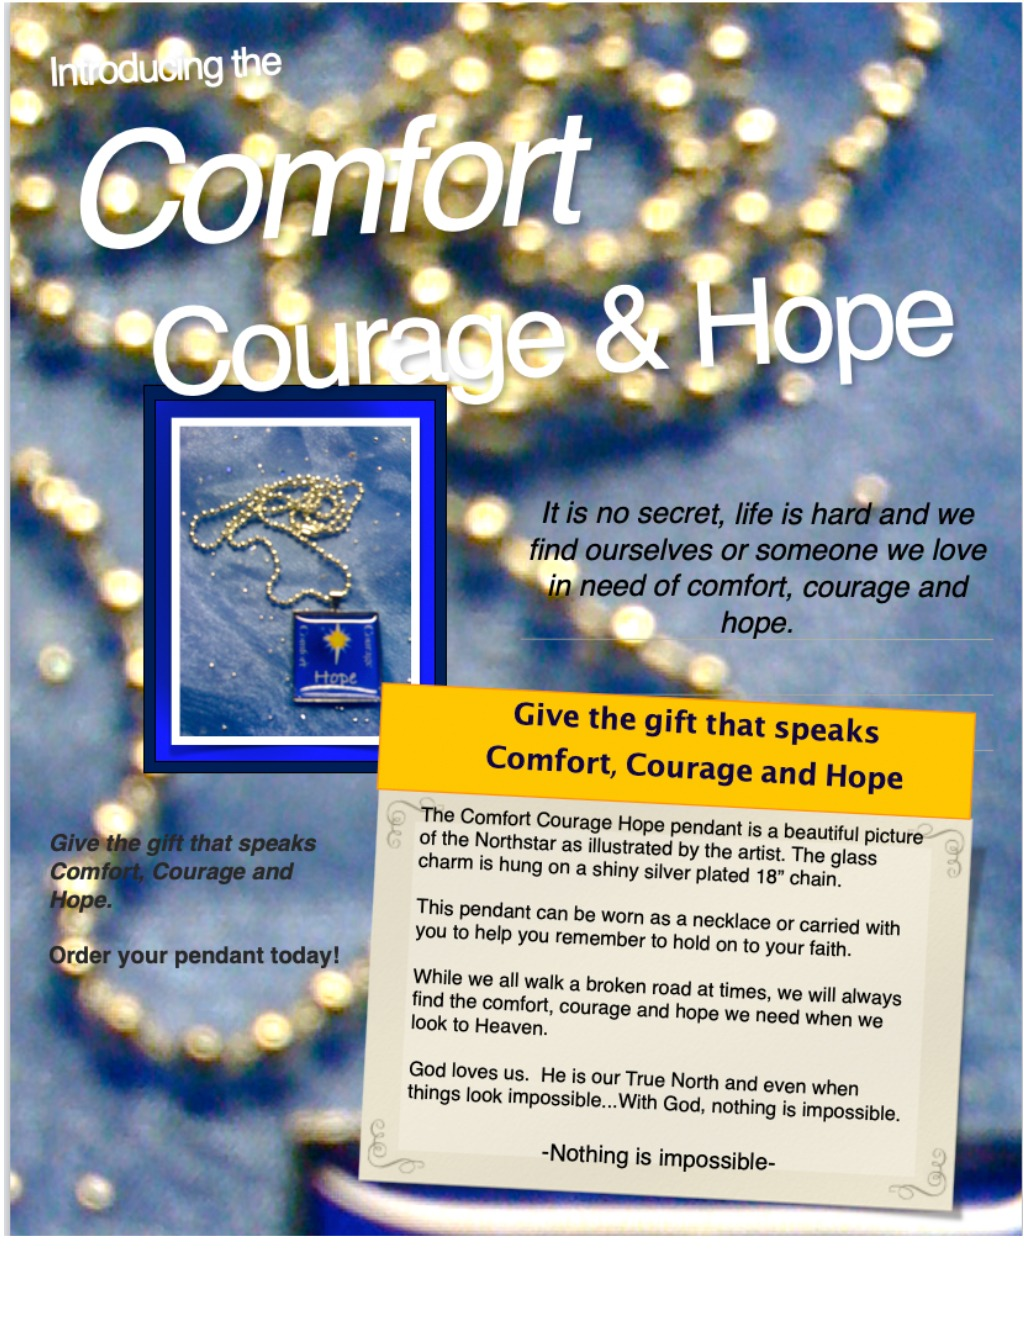 Comfort, Courage Hope pendant